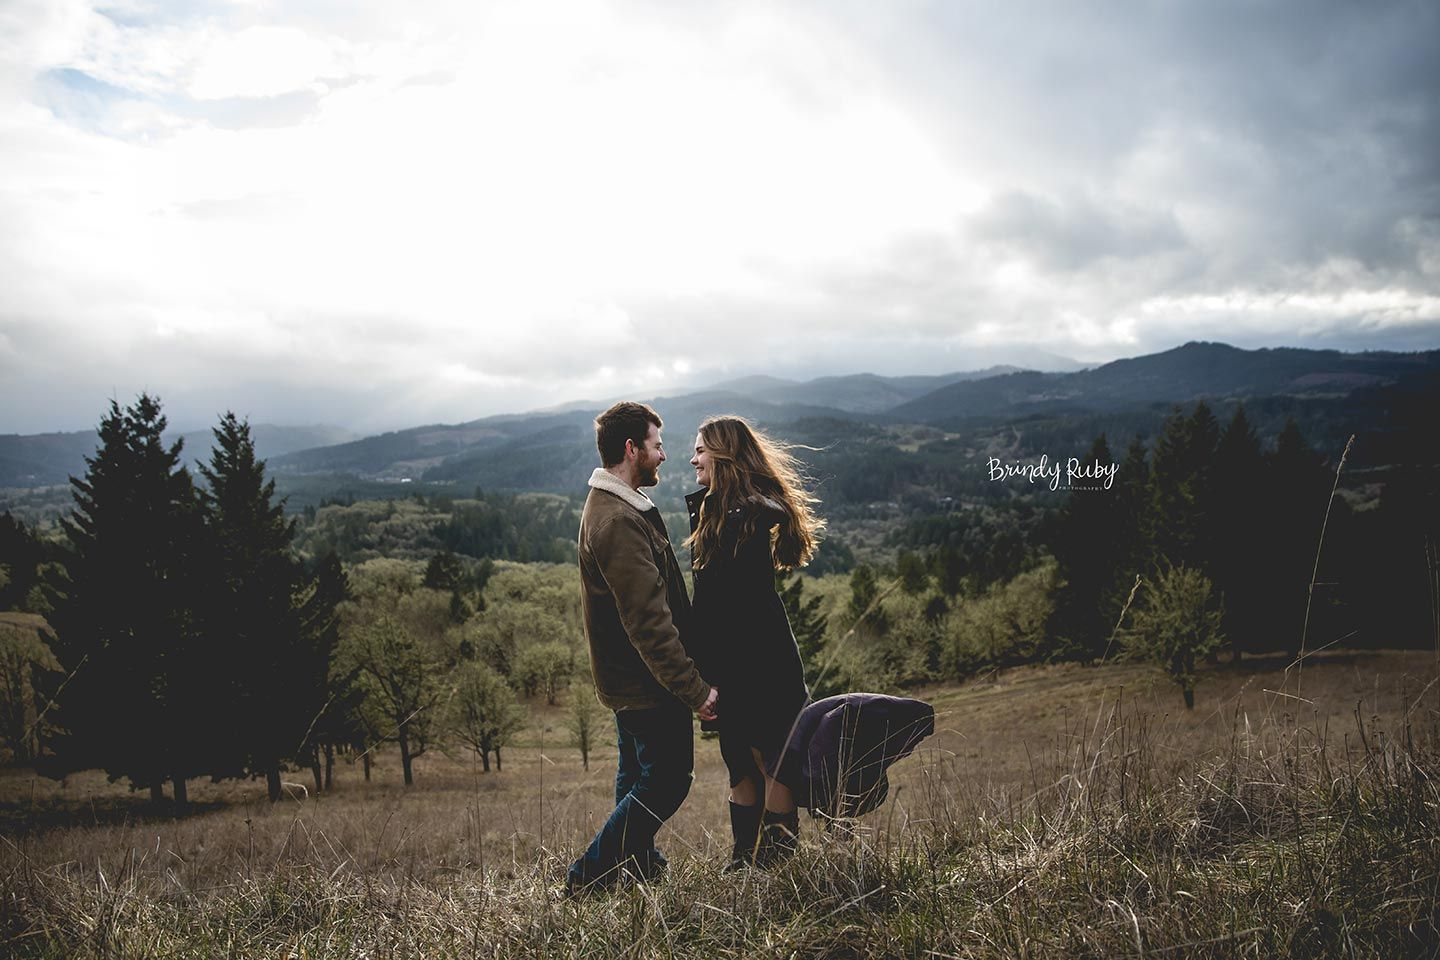 couple facing each other and holding hands on a grassy hill with mountains and clouds in the background